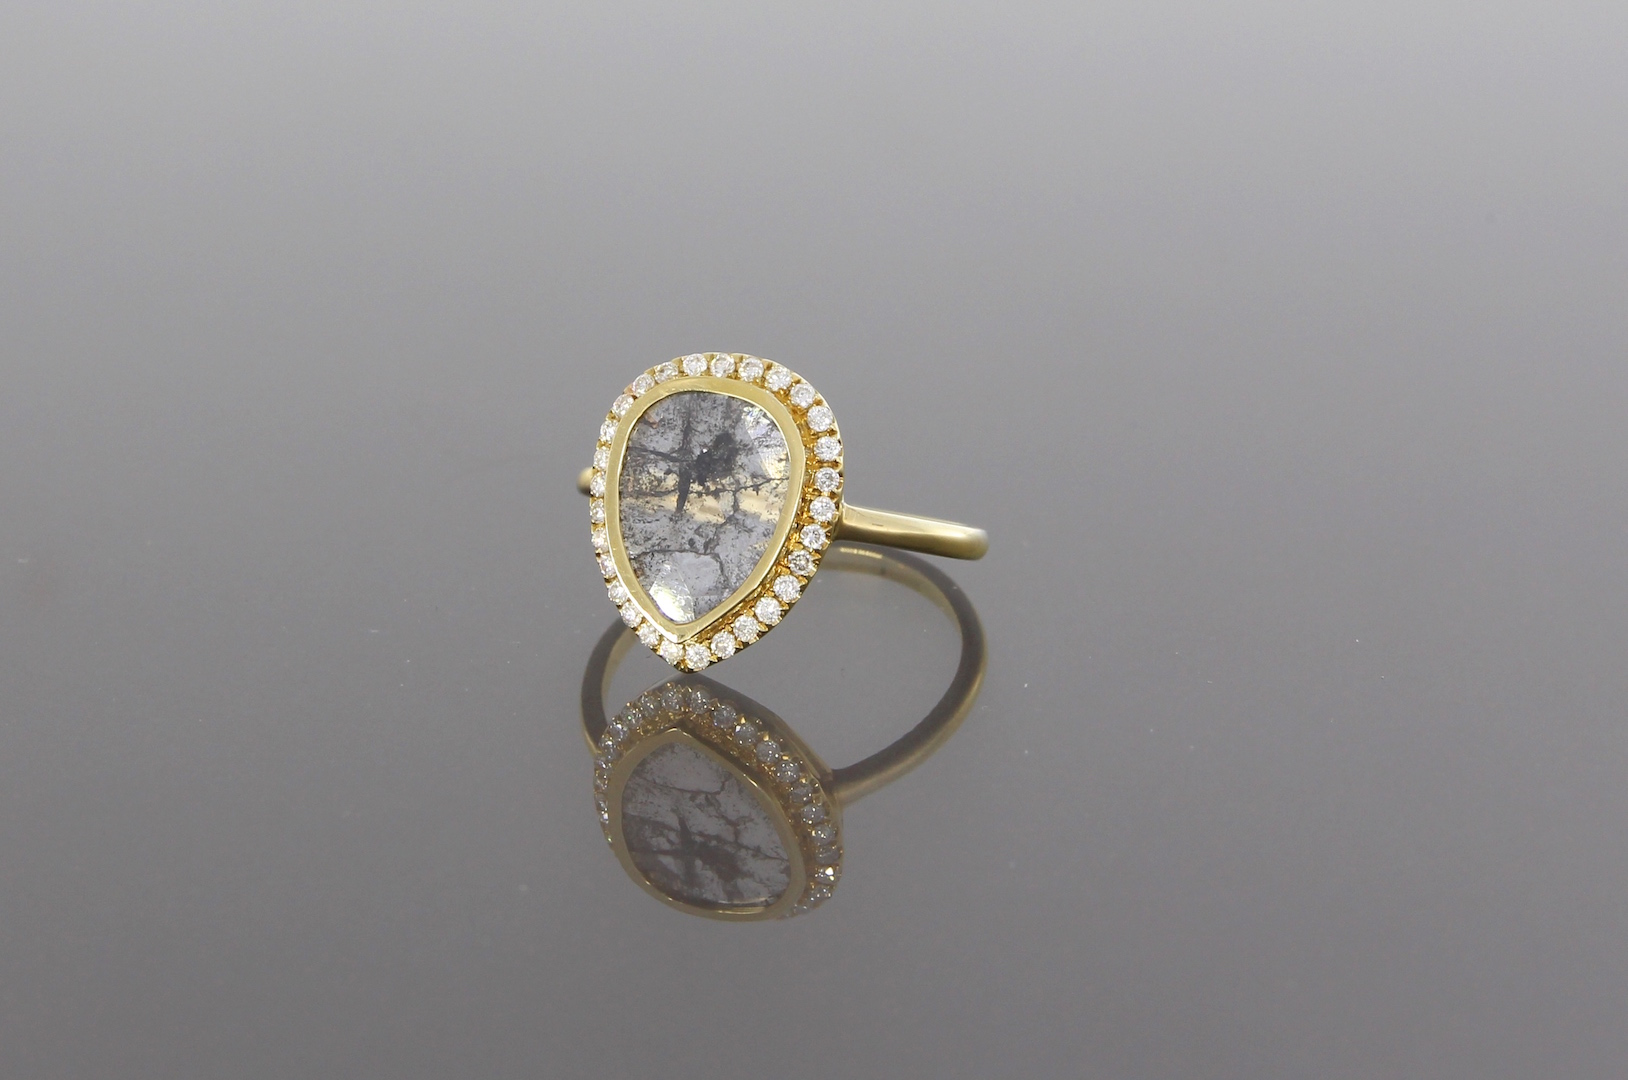 unique-ladies-yellow-gold-diamond-slice-raw-diamond-delicate-halo-alternative-engagement-ring-craft-revival-jewelry-store